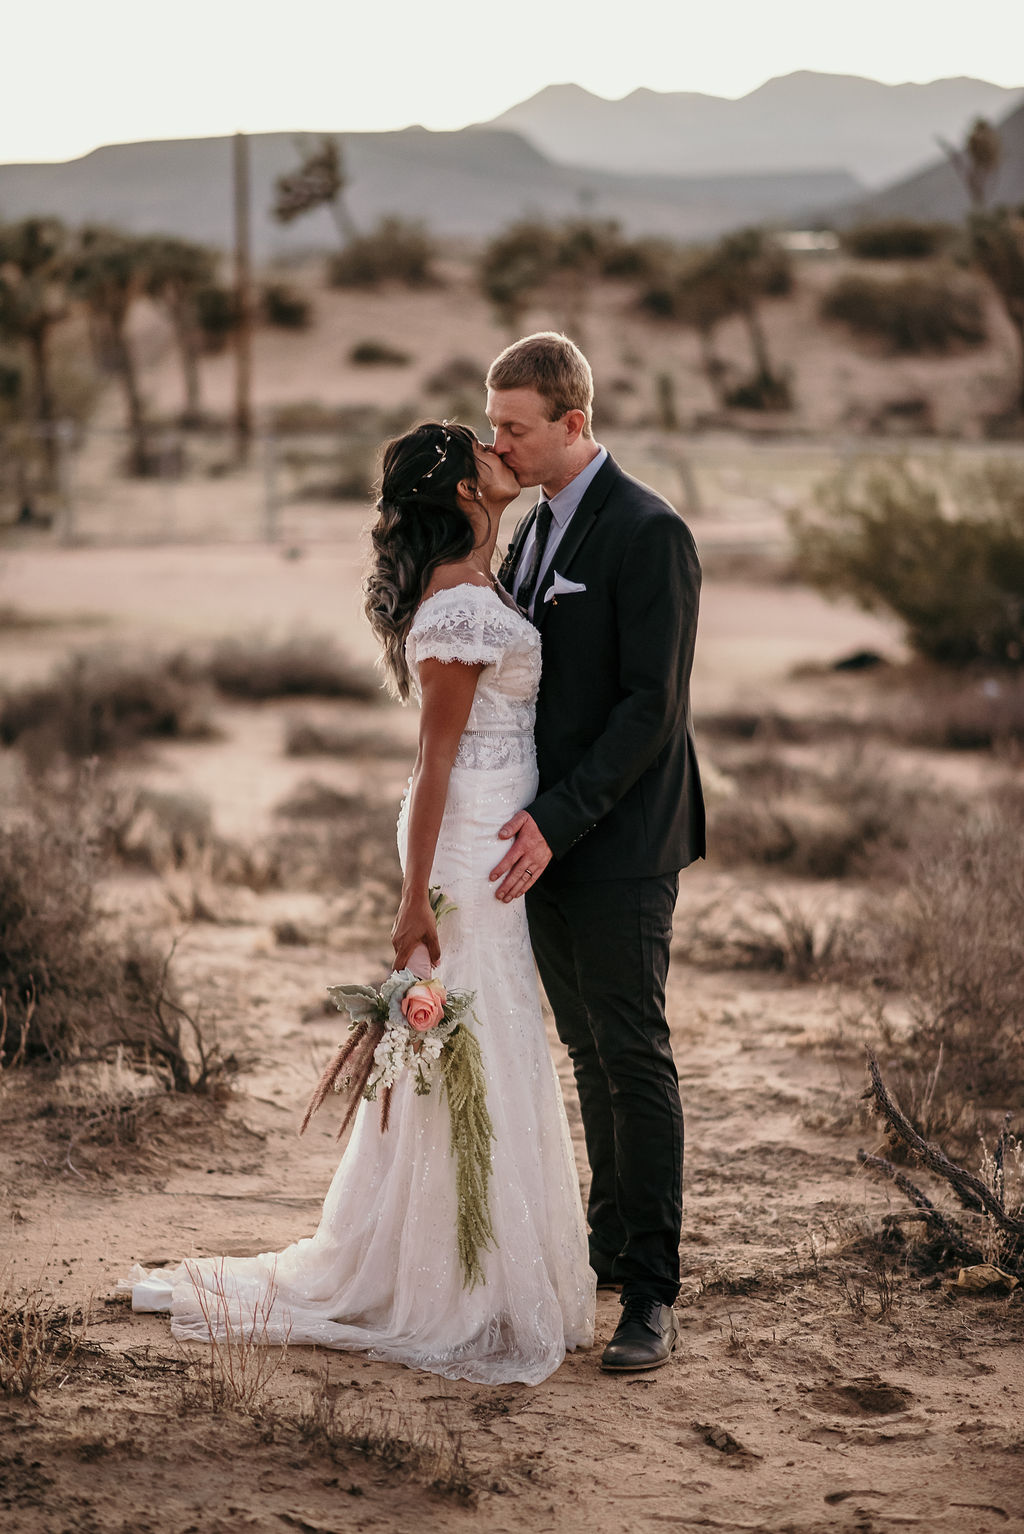 This couple went for a boho wedding in the desert with only some nearest people around